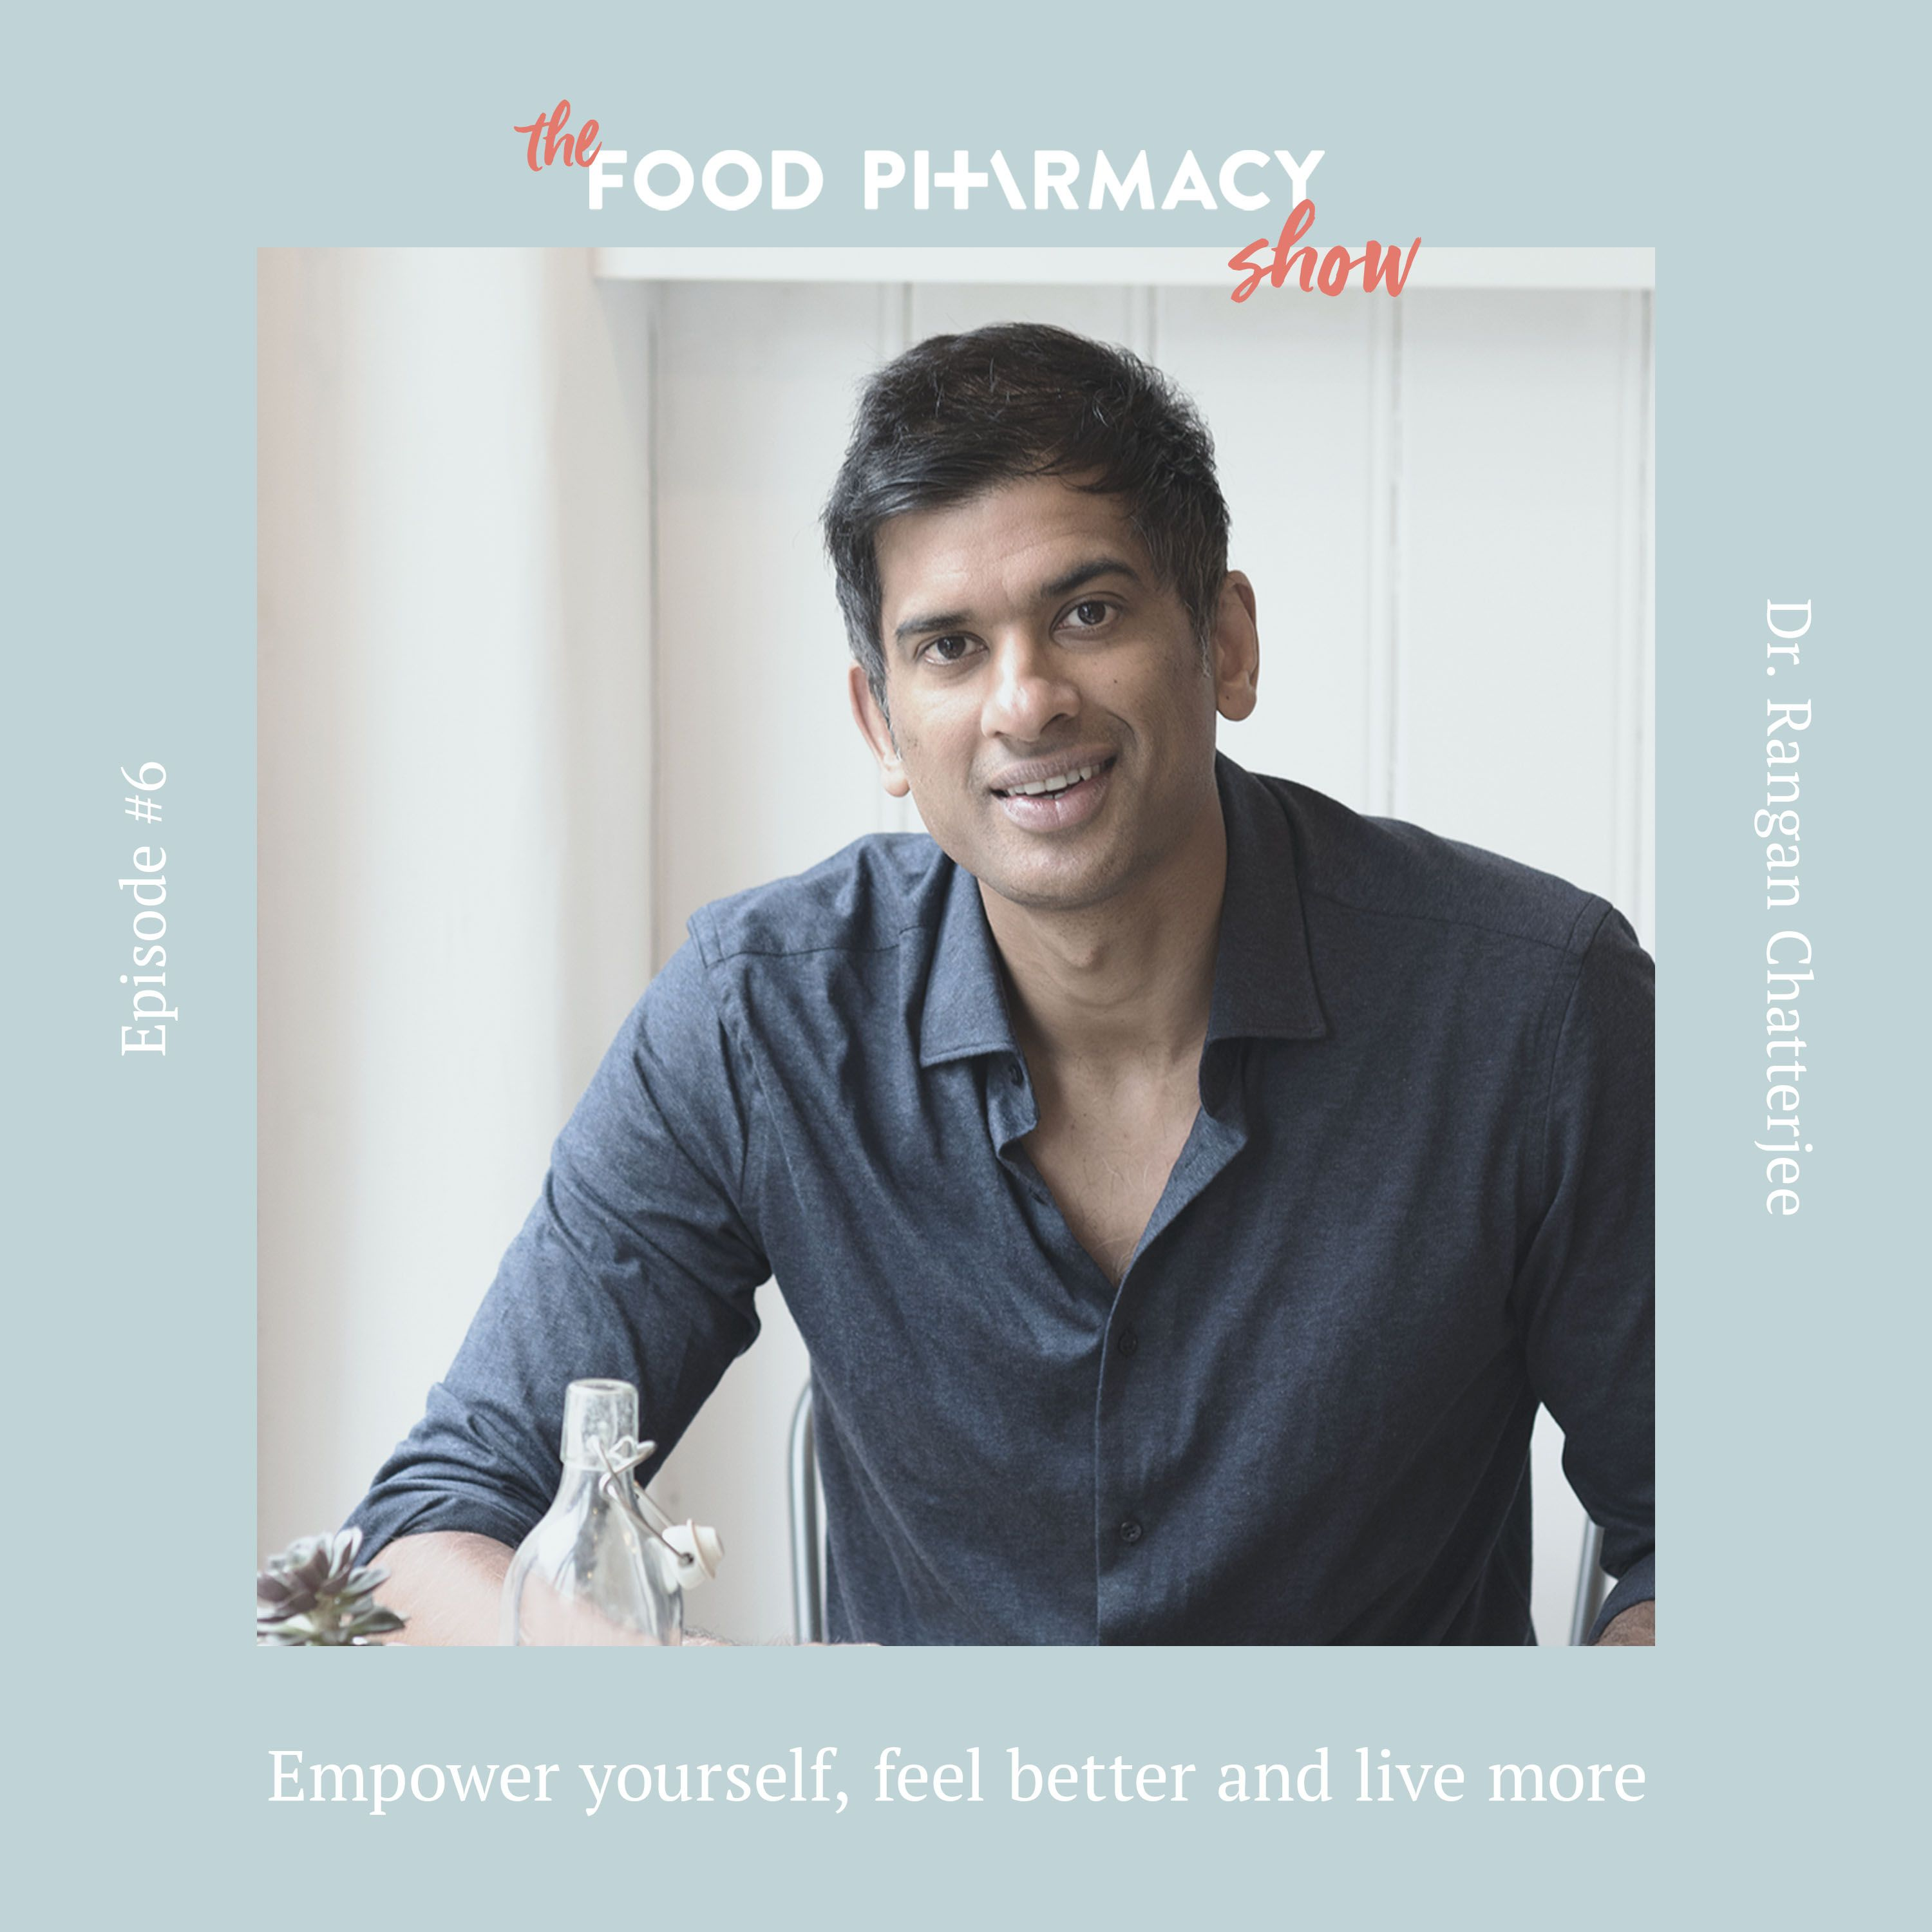 6. Dr Rangan Chatterjee - empower yourself, feel better and live moreUntitled Episode